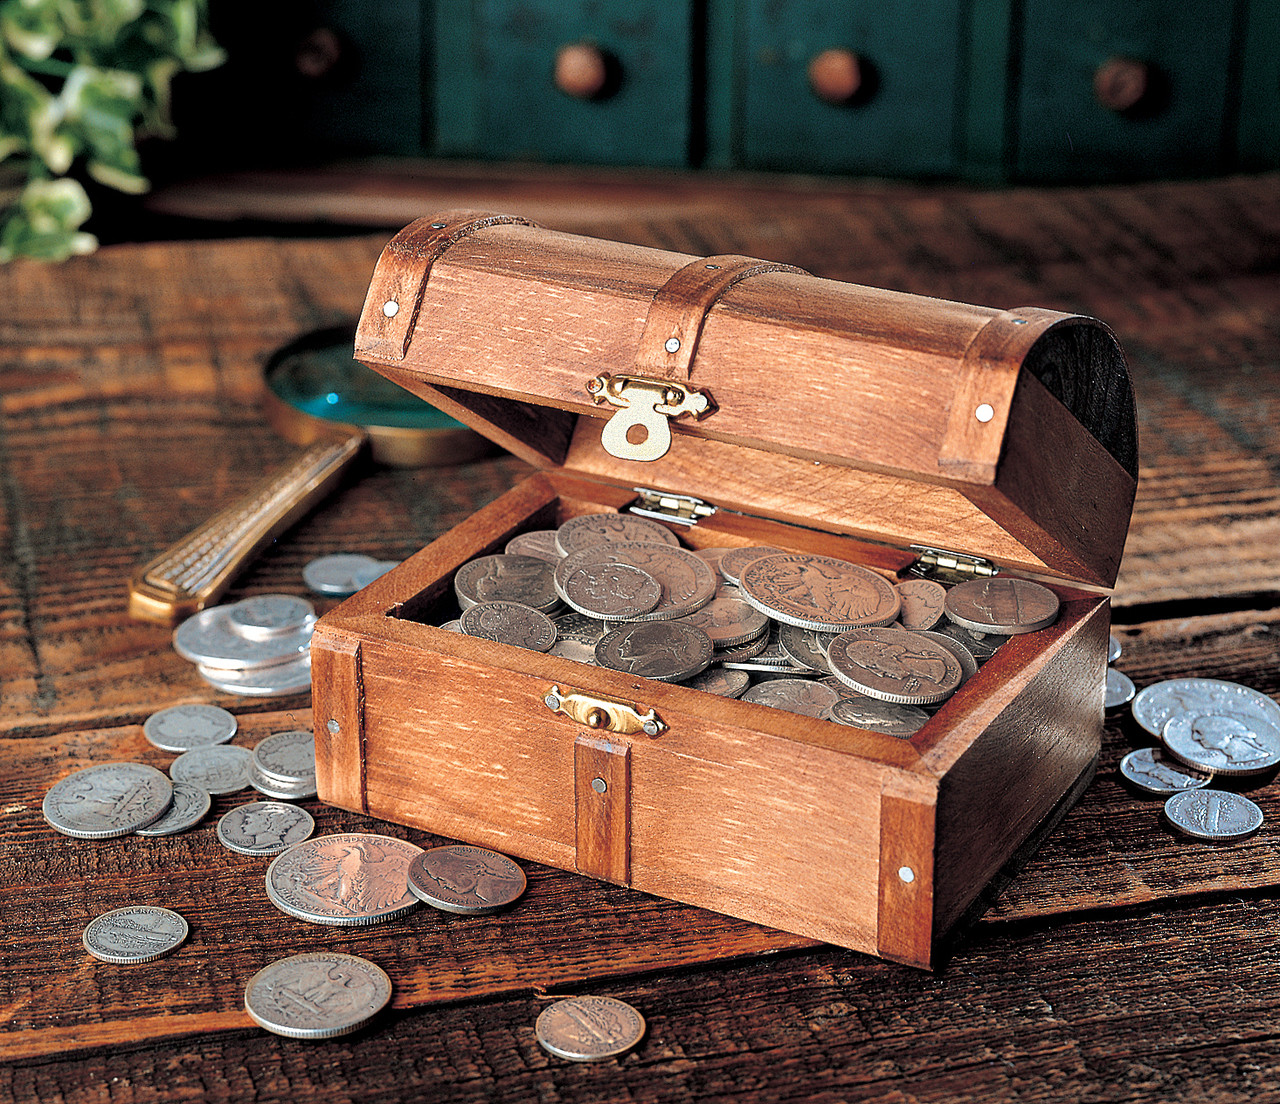 Collector's Historic Wooden Treasure Chest of Rare Old Silver Coins -  Actual Authentic Collectibles